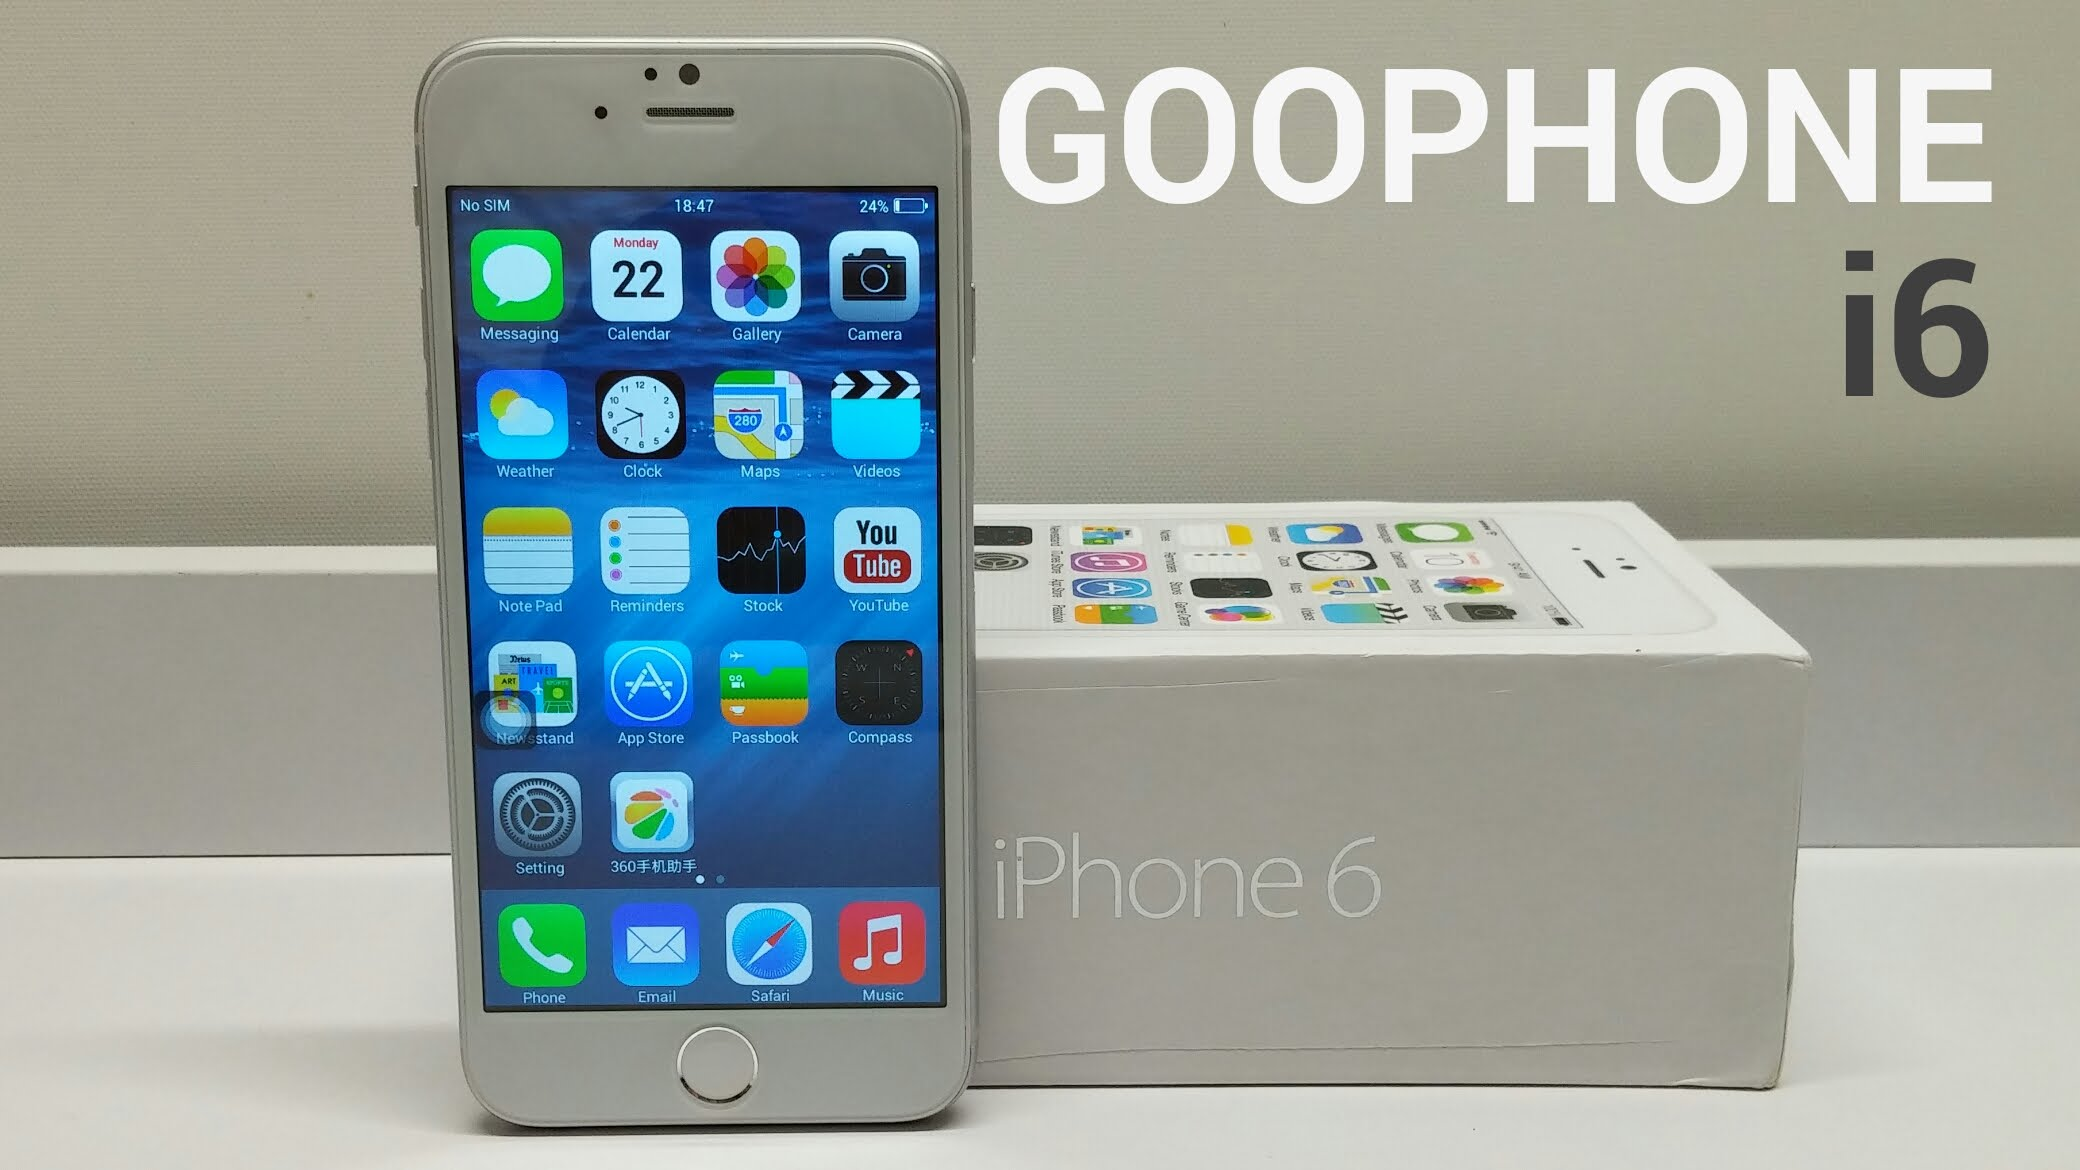 The Goophone I6 May Be For You If All You Want Is The Look